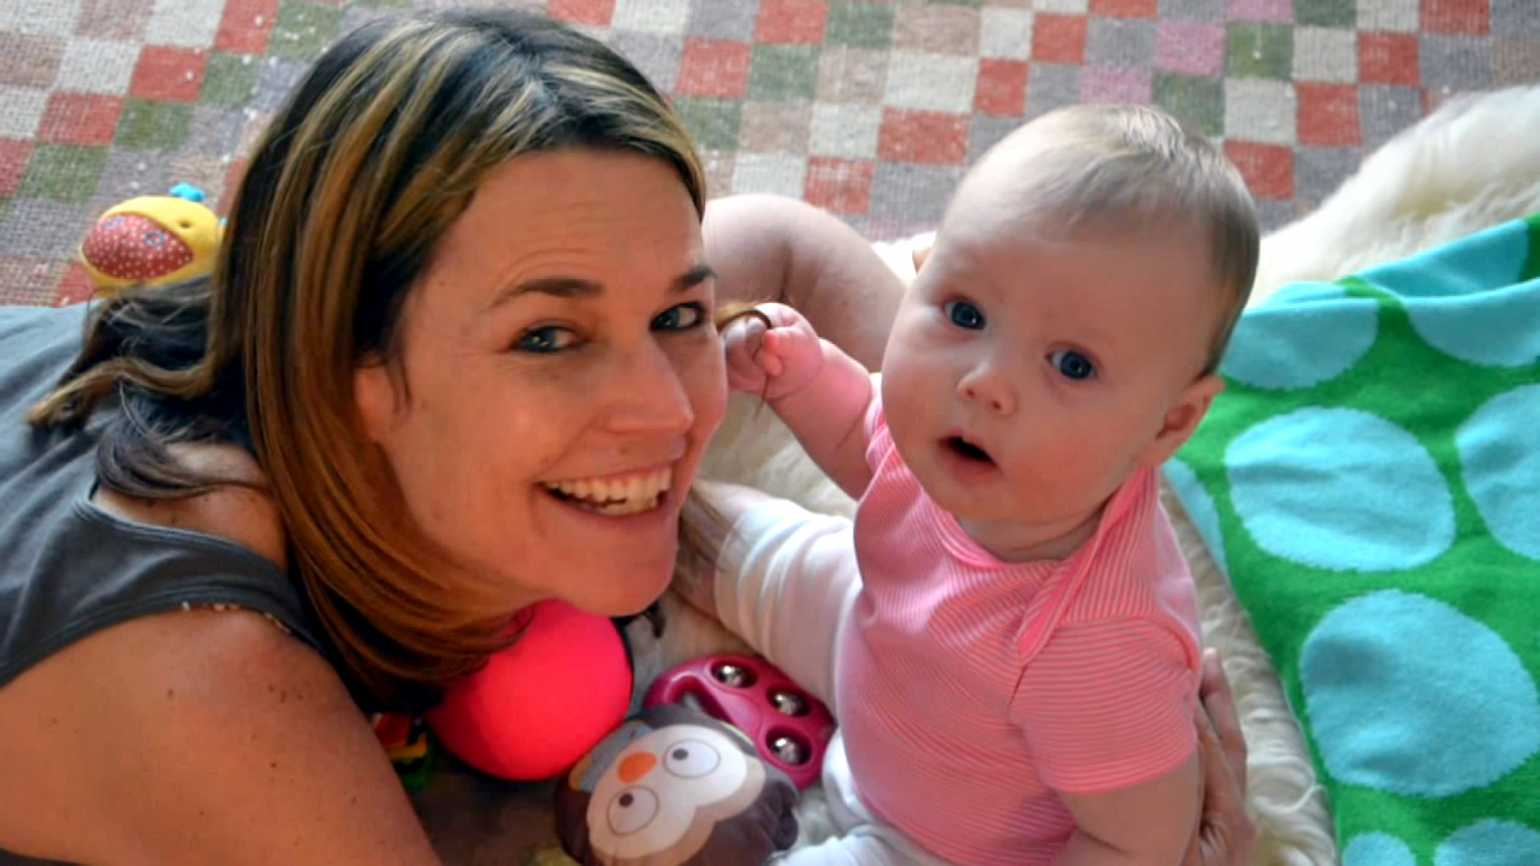 Today Show host Savannah Guthrie with her daughter, Vale